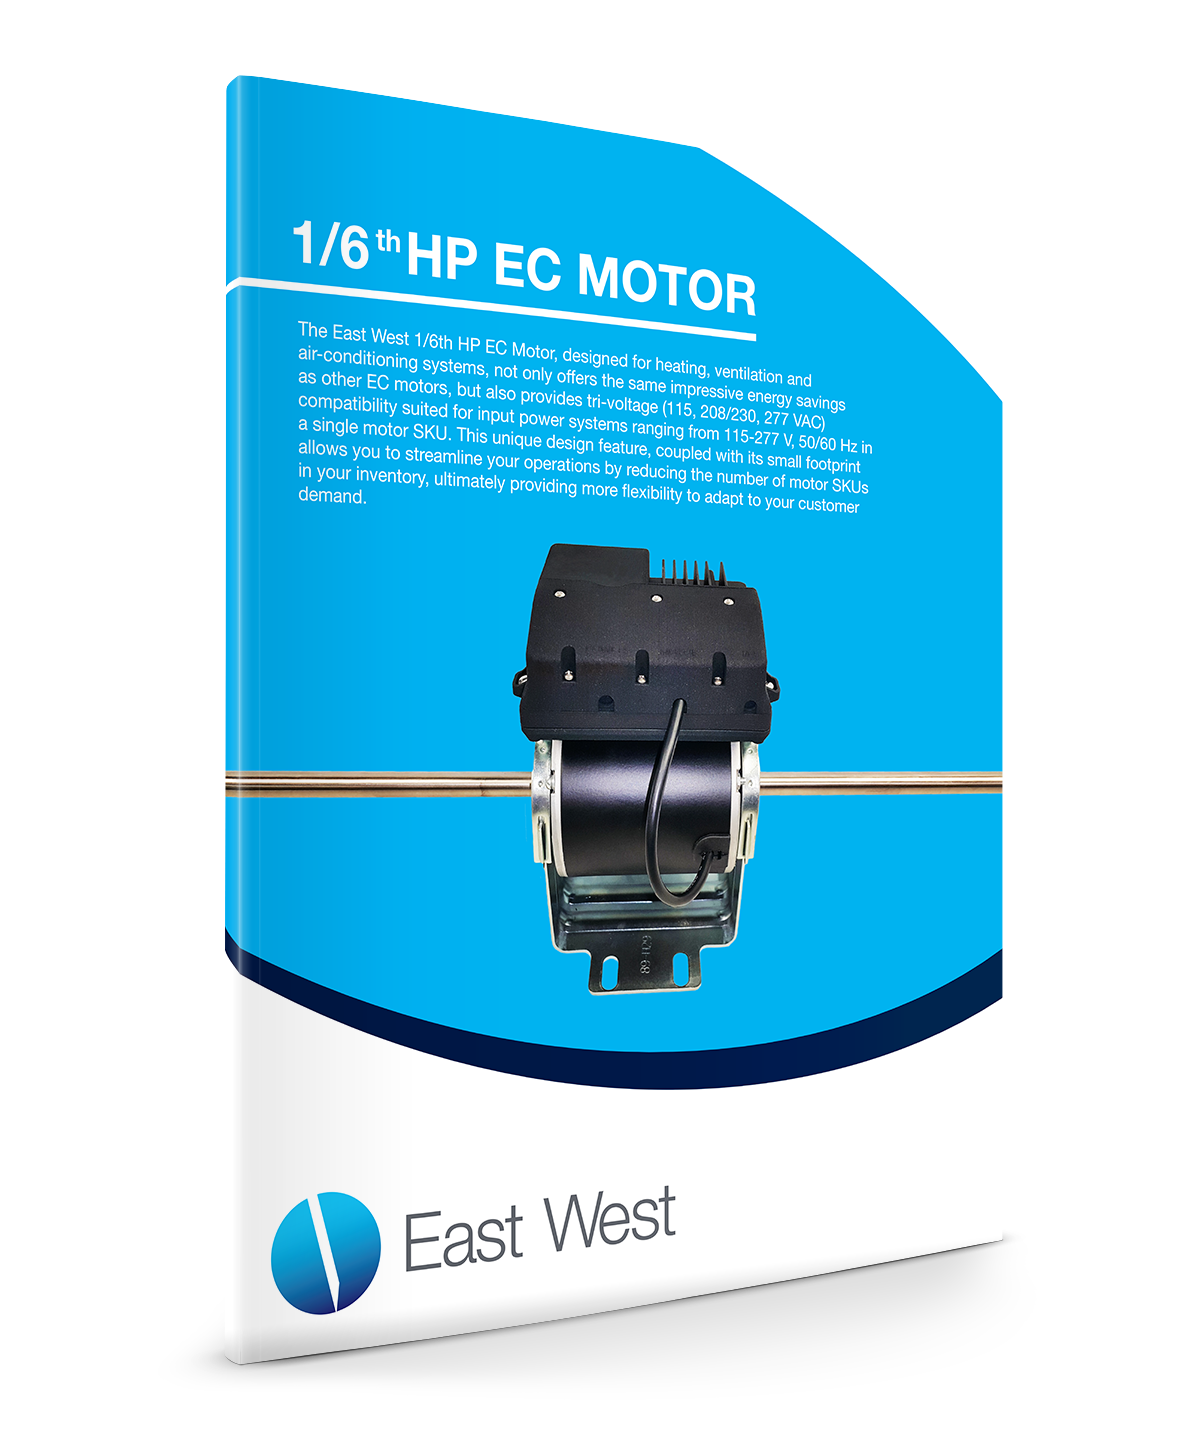 1-6th-HP-EC-Motor-Brochure